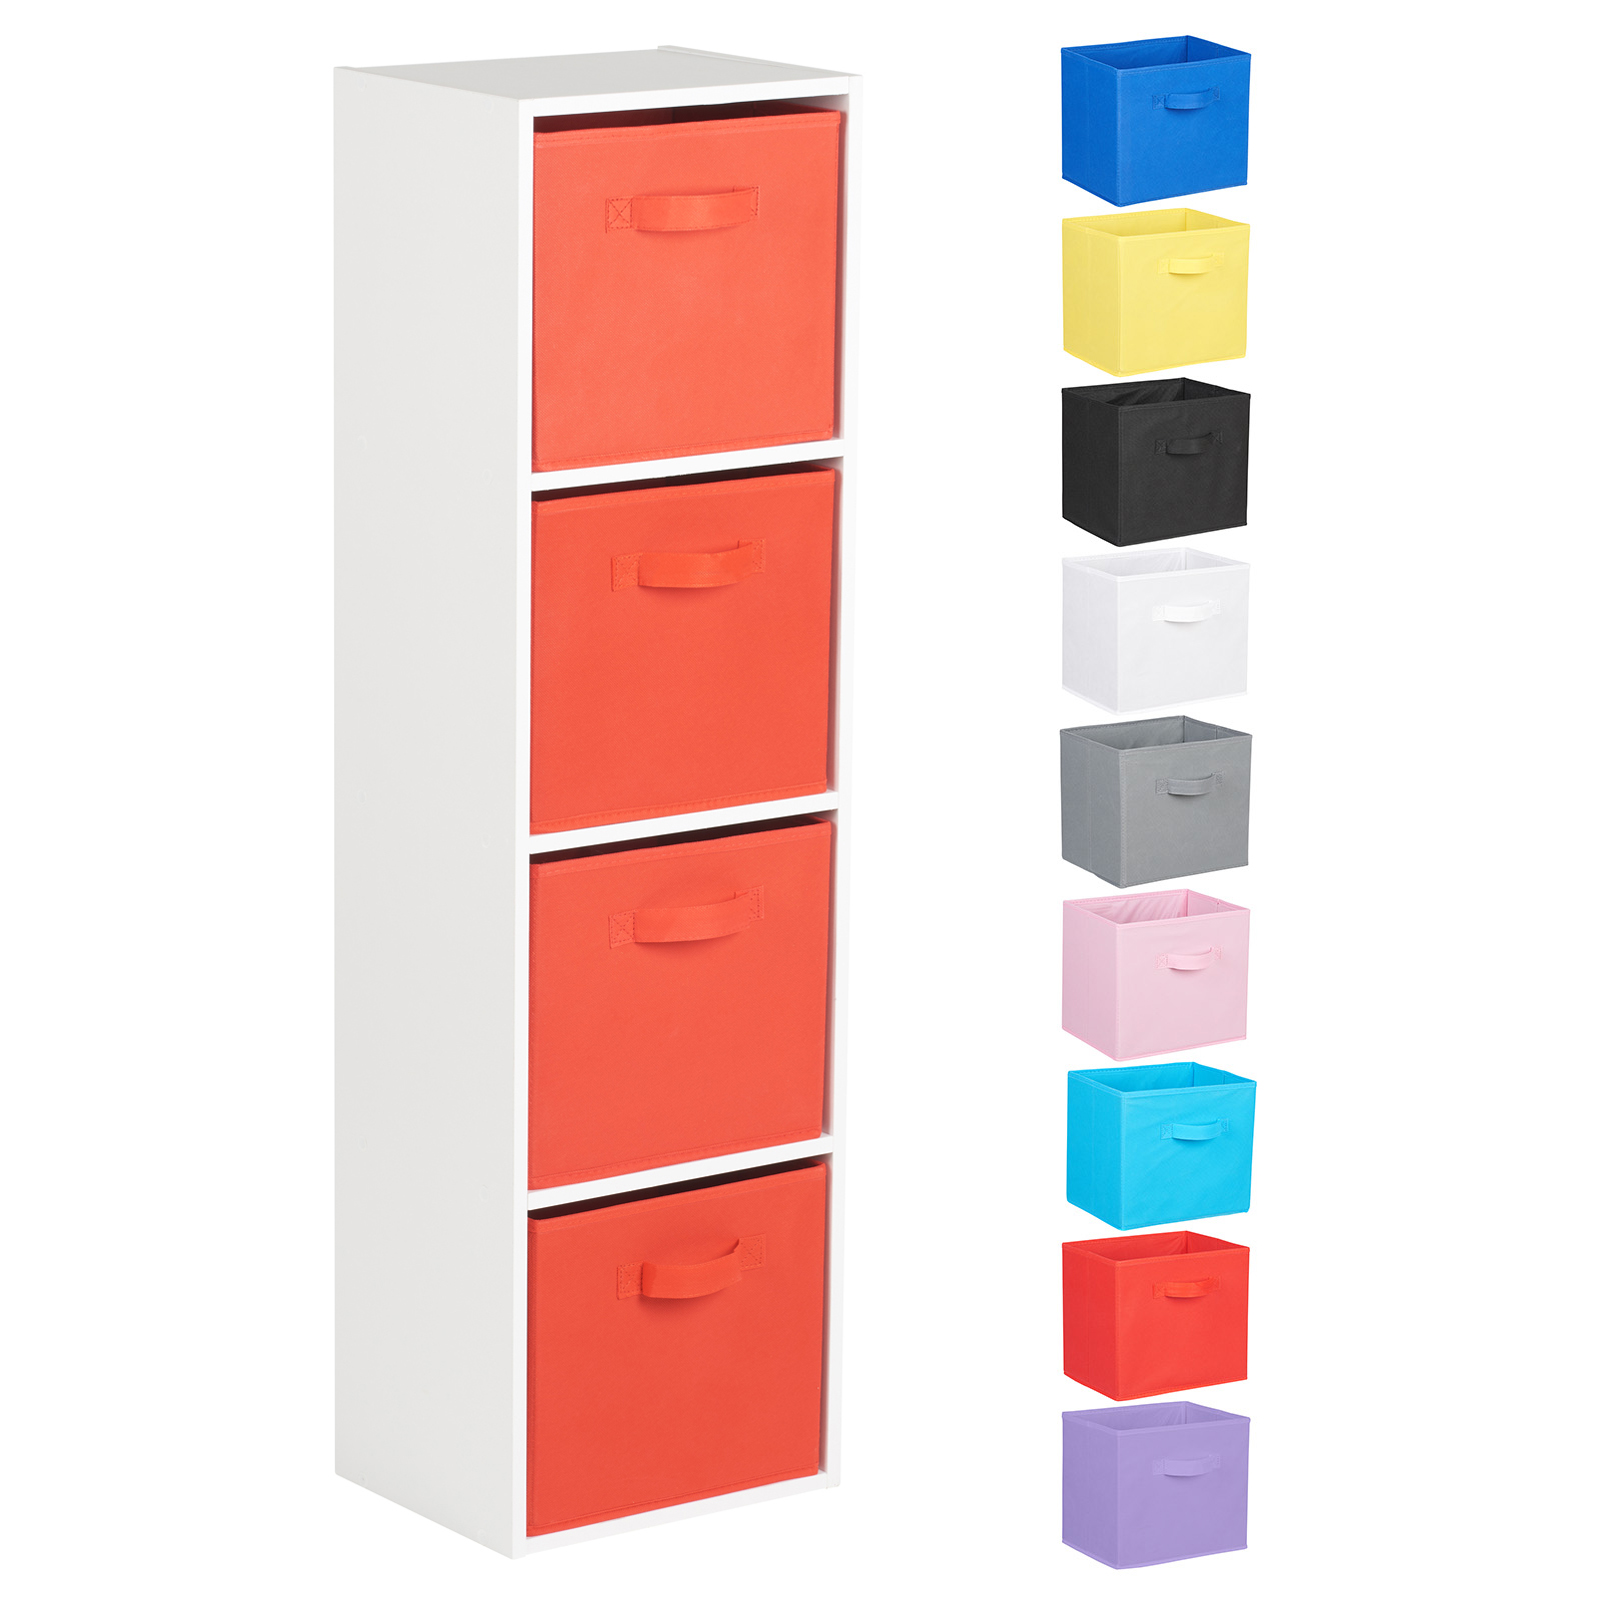 Hartleys-4-Tier-White-Bookcase-Wooden-Display-Shelving-Unit-amp-Fabric-Storage-Box thumbnail 39